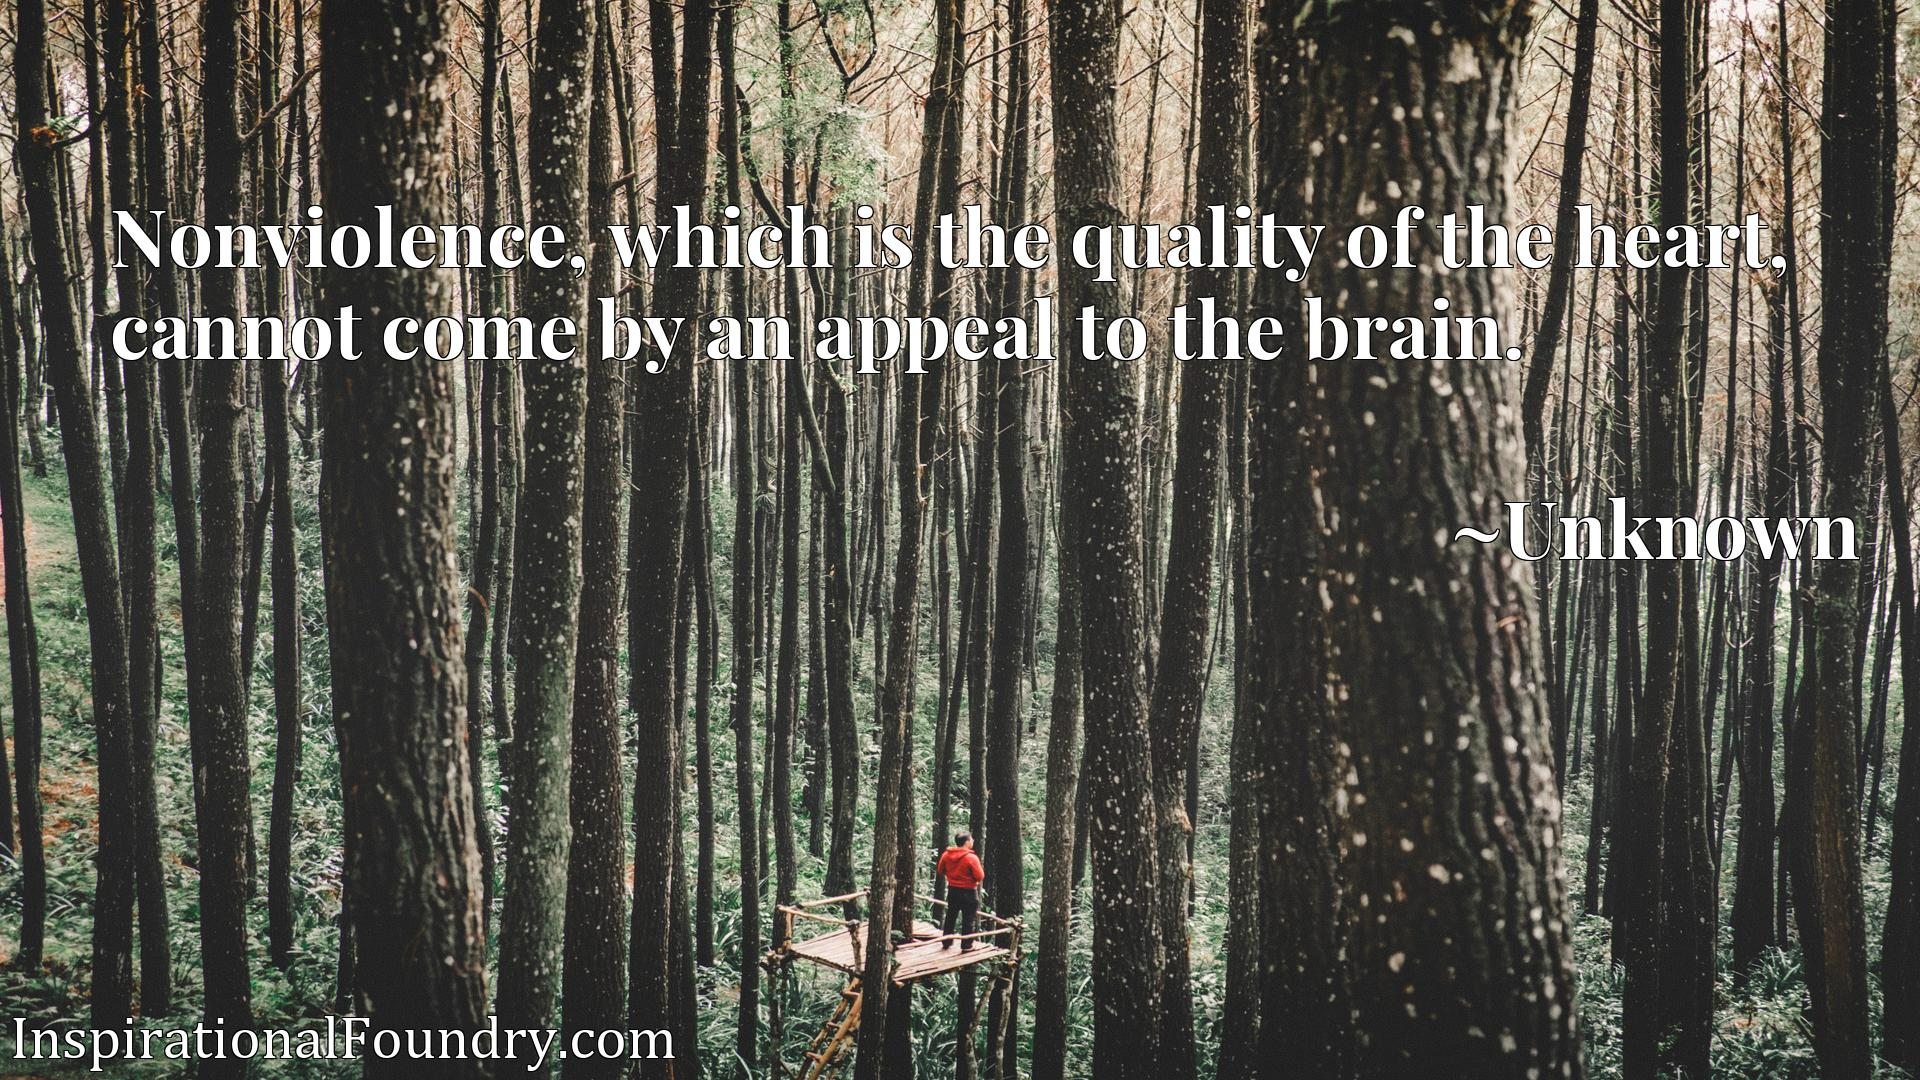 Quote Picture :Nonviolence, which is the quality of the heart, cannot come by an appeal to the brain.